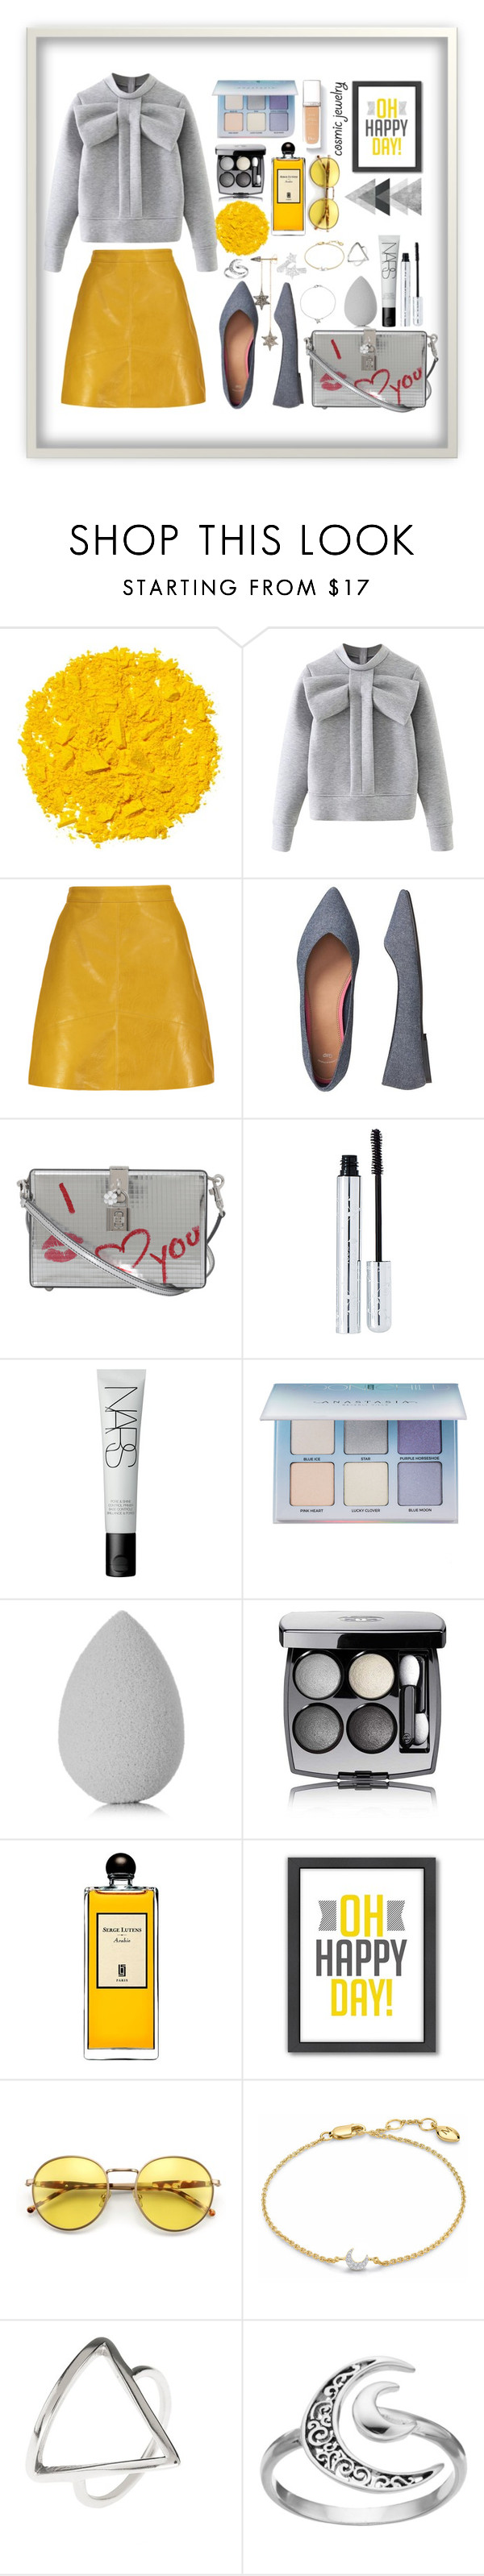 """""""Sans titre #56"""" by sarahmartens2 ❤ liked on Polyvore featuring Illamasqua, WithChic, Gap, Dolce&Gabbana, 100% Pure, NARS Cosmetics, Anastasia Beverly Hills, beautyblender, Chanel and Serge Lutens"""